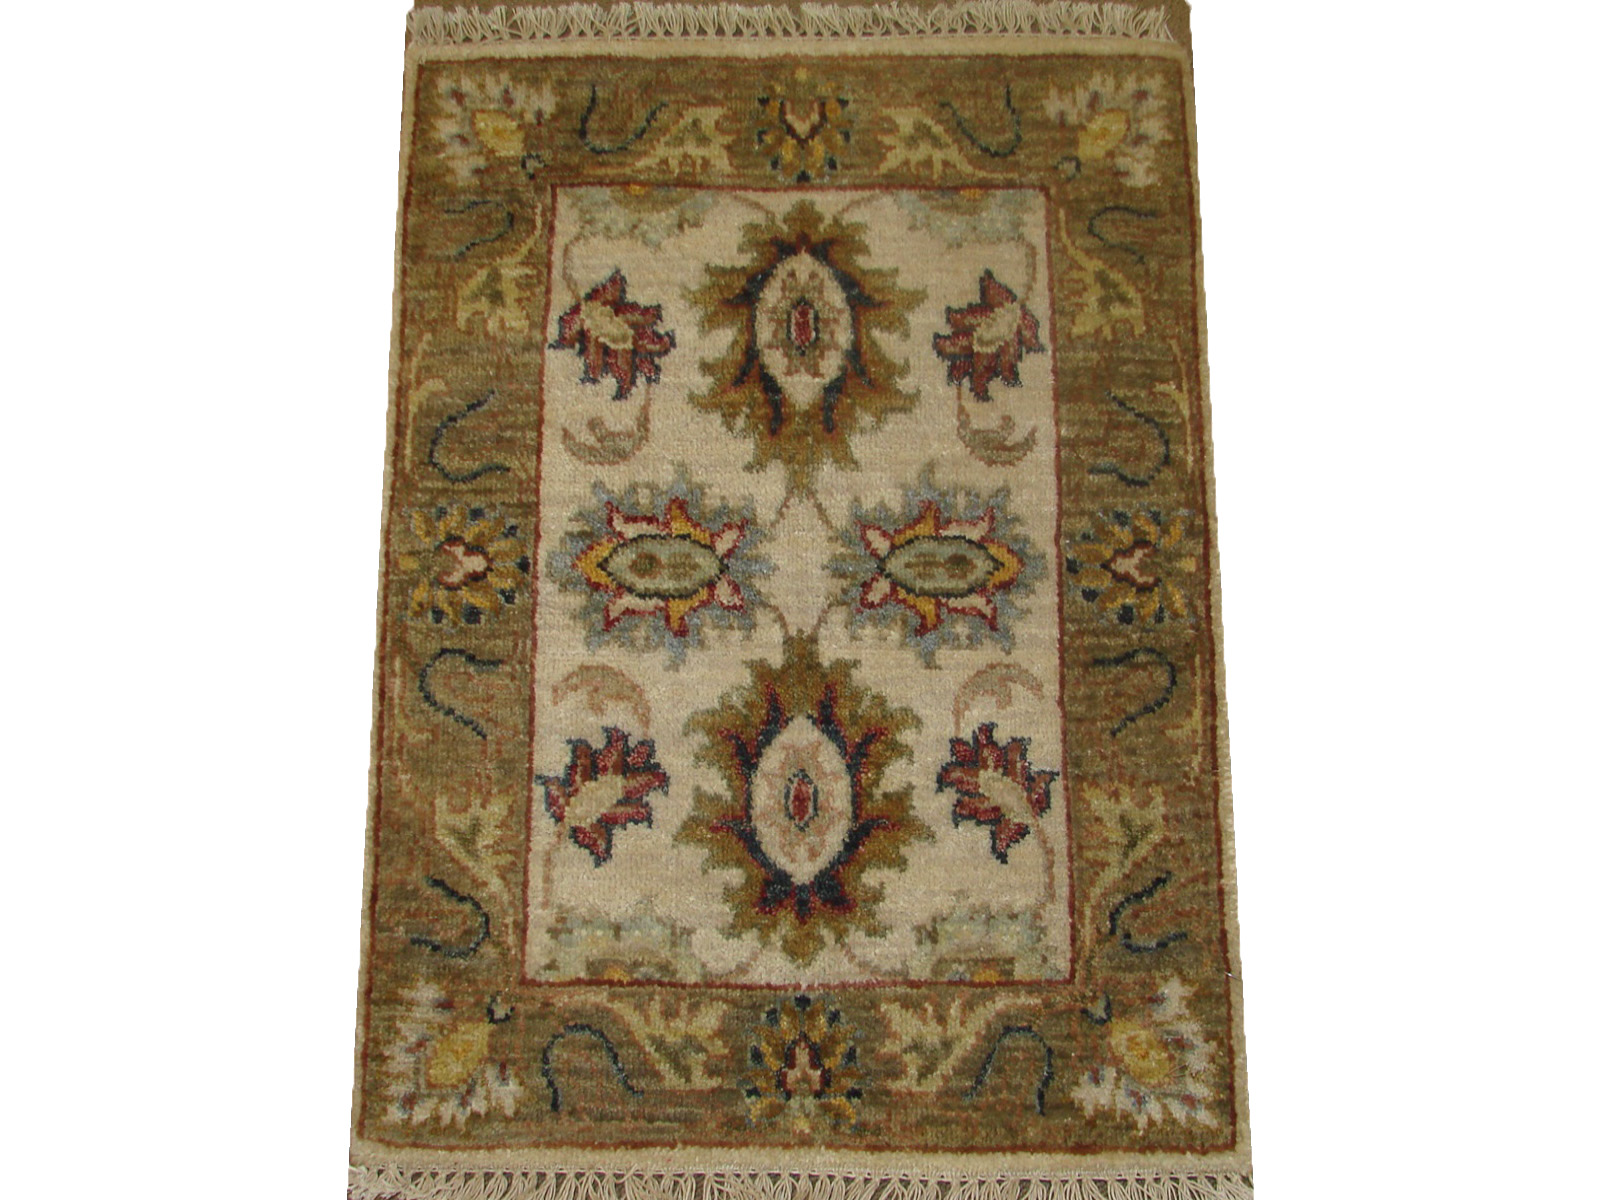 1.6X2 & SMALLER Traditional Hand Knotted Wool Area Rug - MR21104